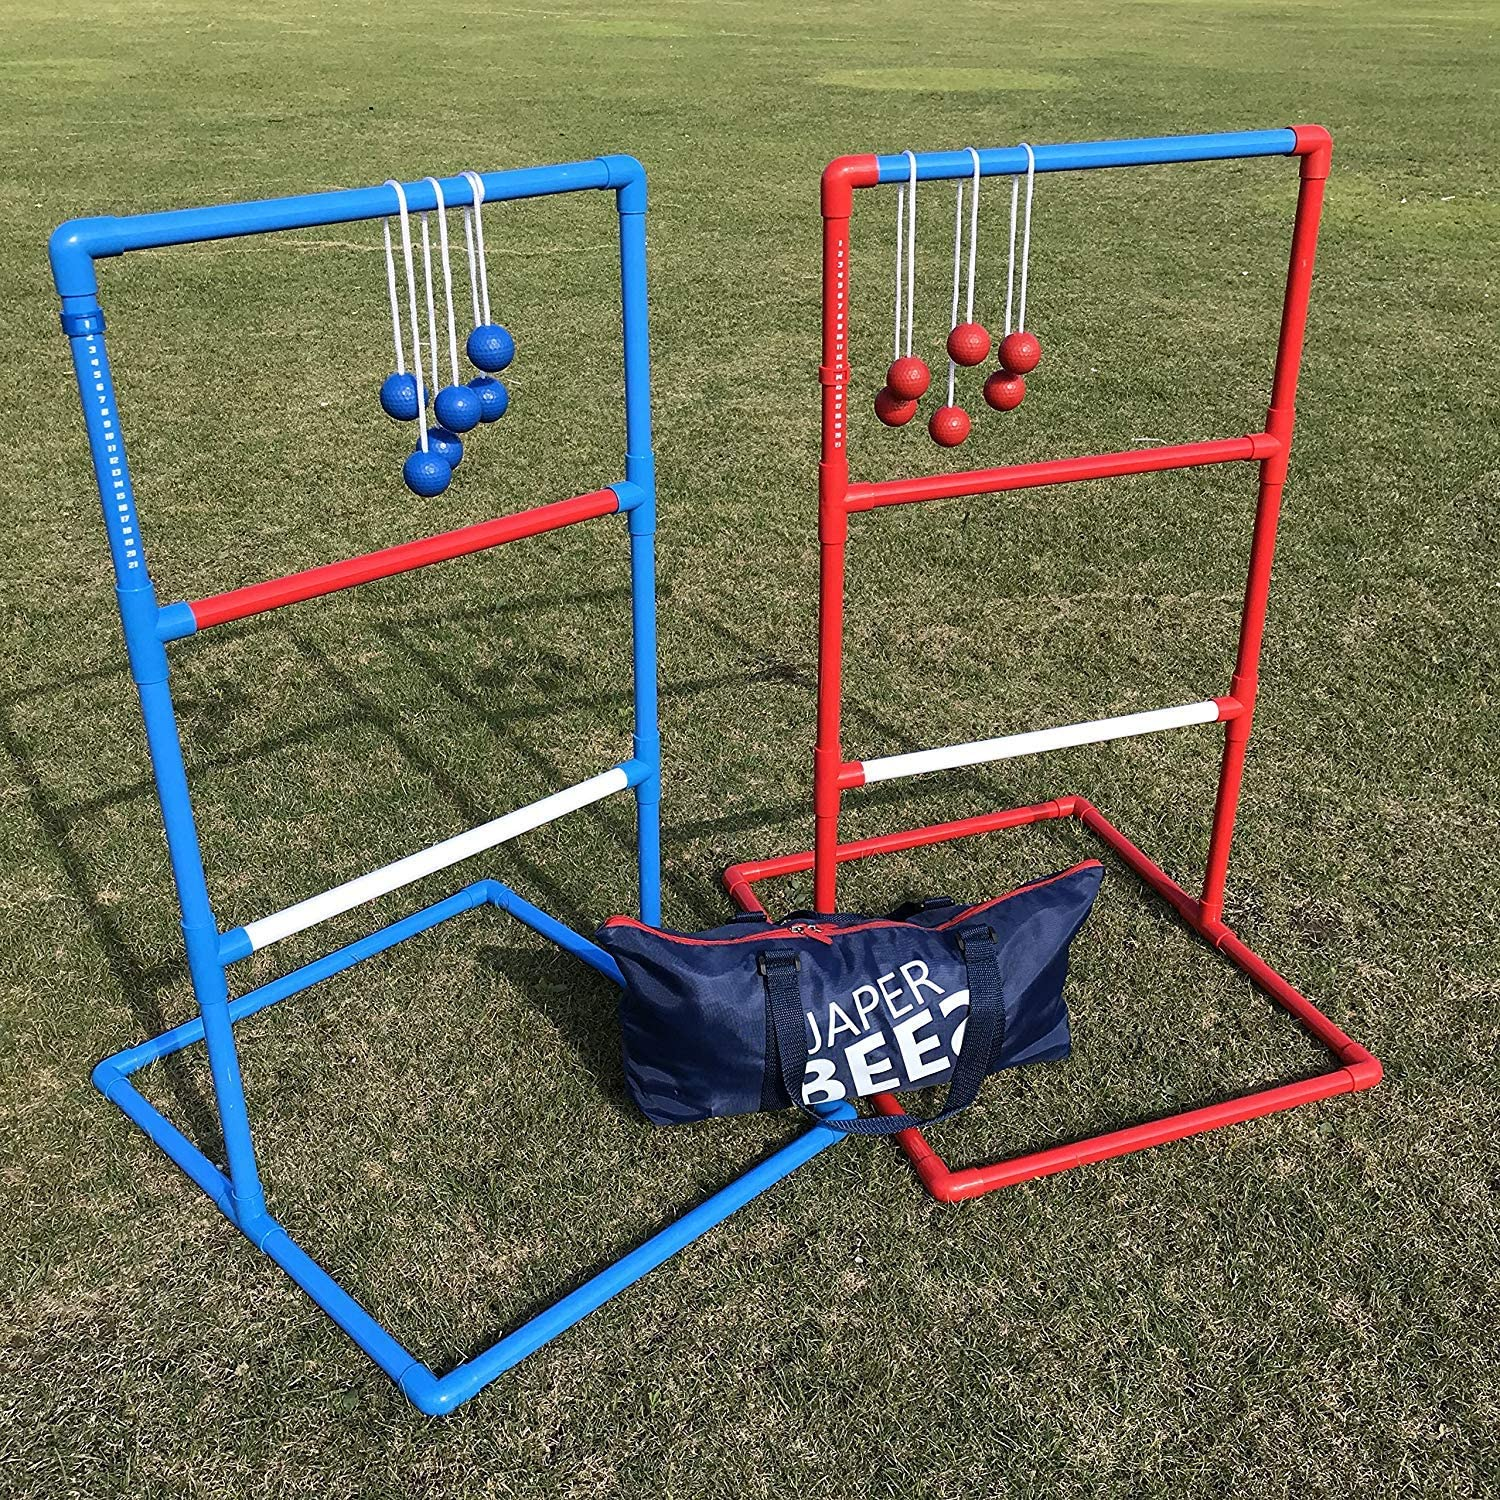 JAPER BEES Ladder Ball Toss Game Set, Outdoor Lawn Game with Rubber Bolo Balls Fasion Carrying Bag